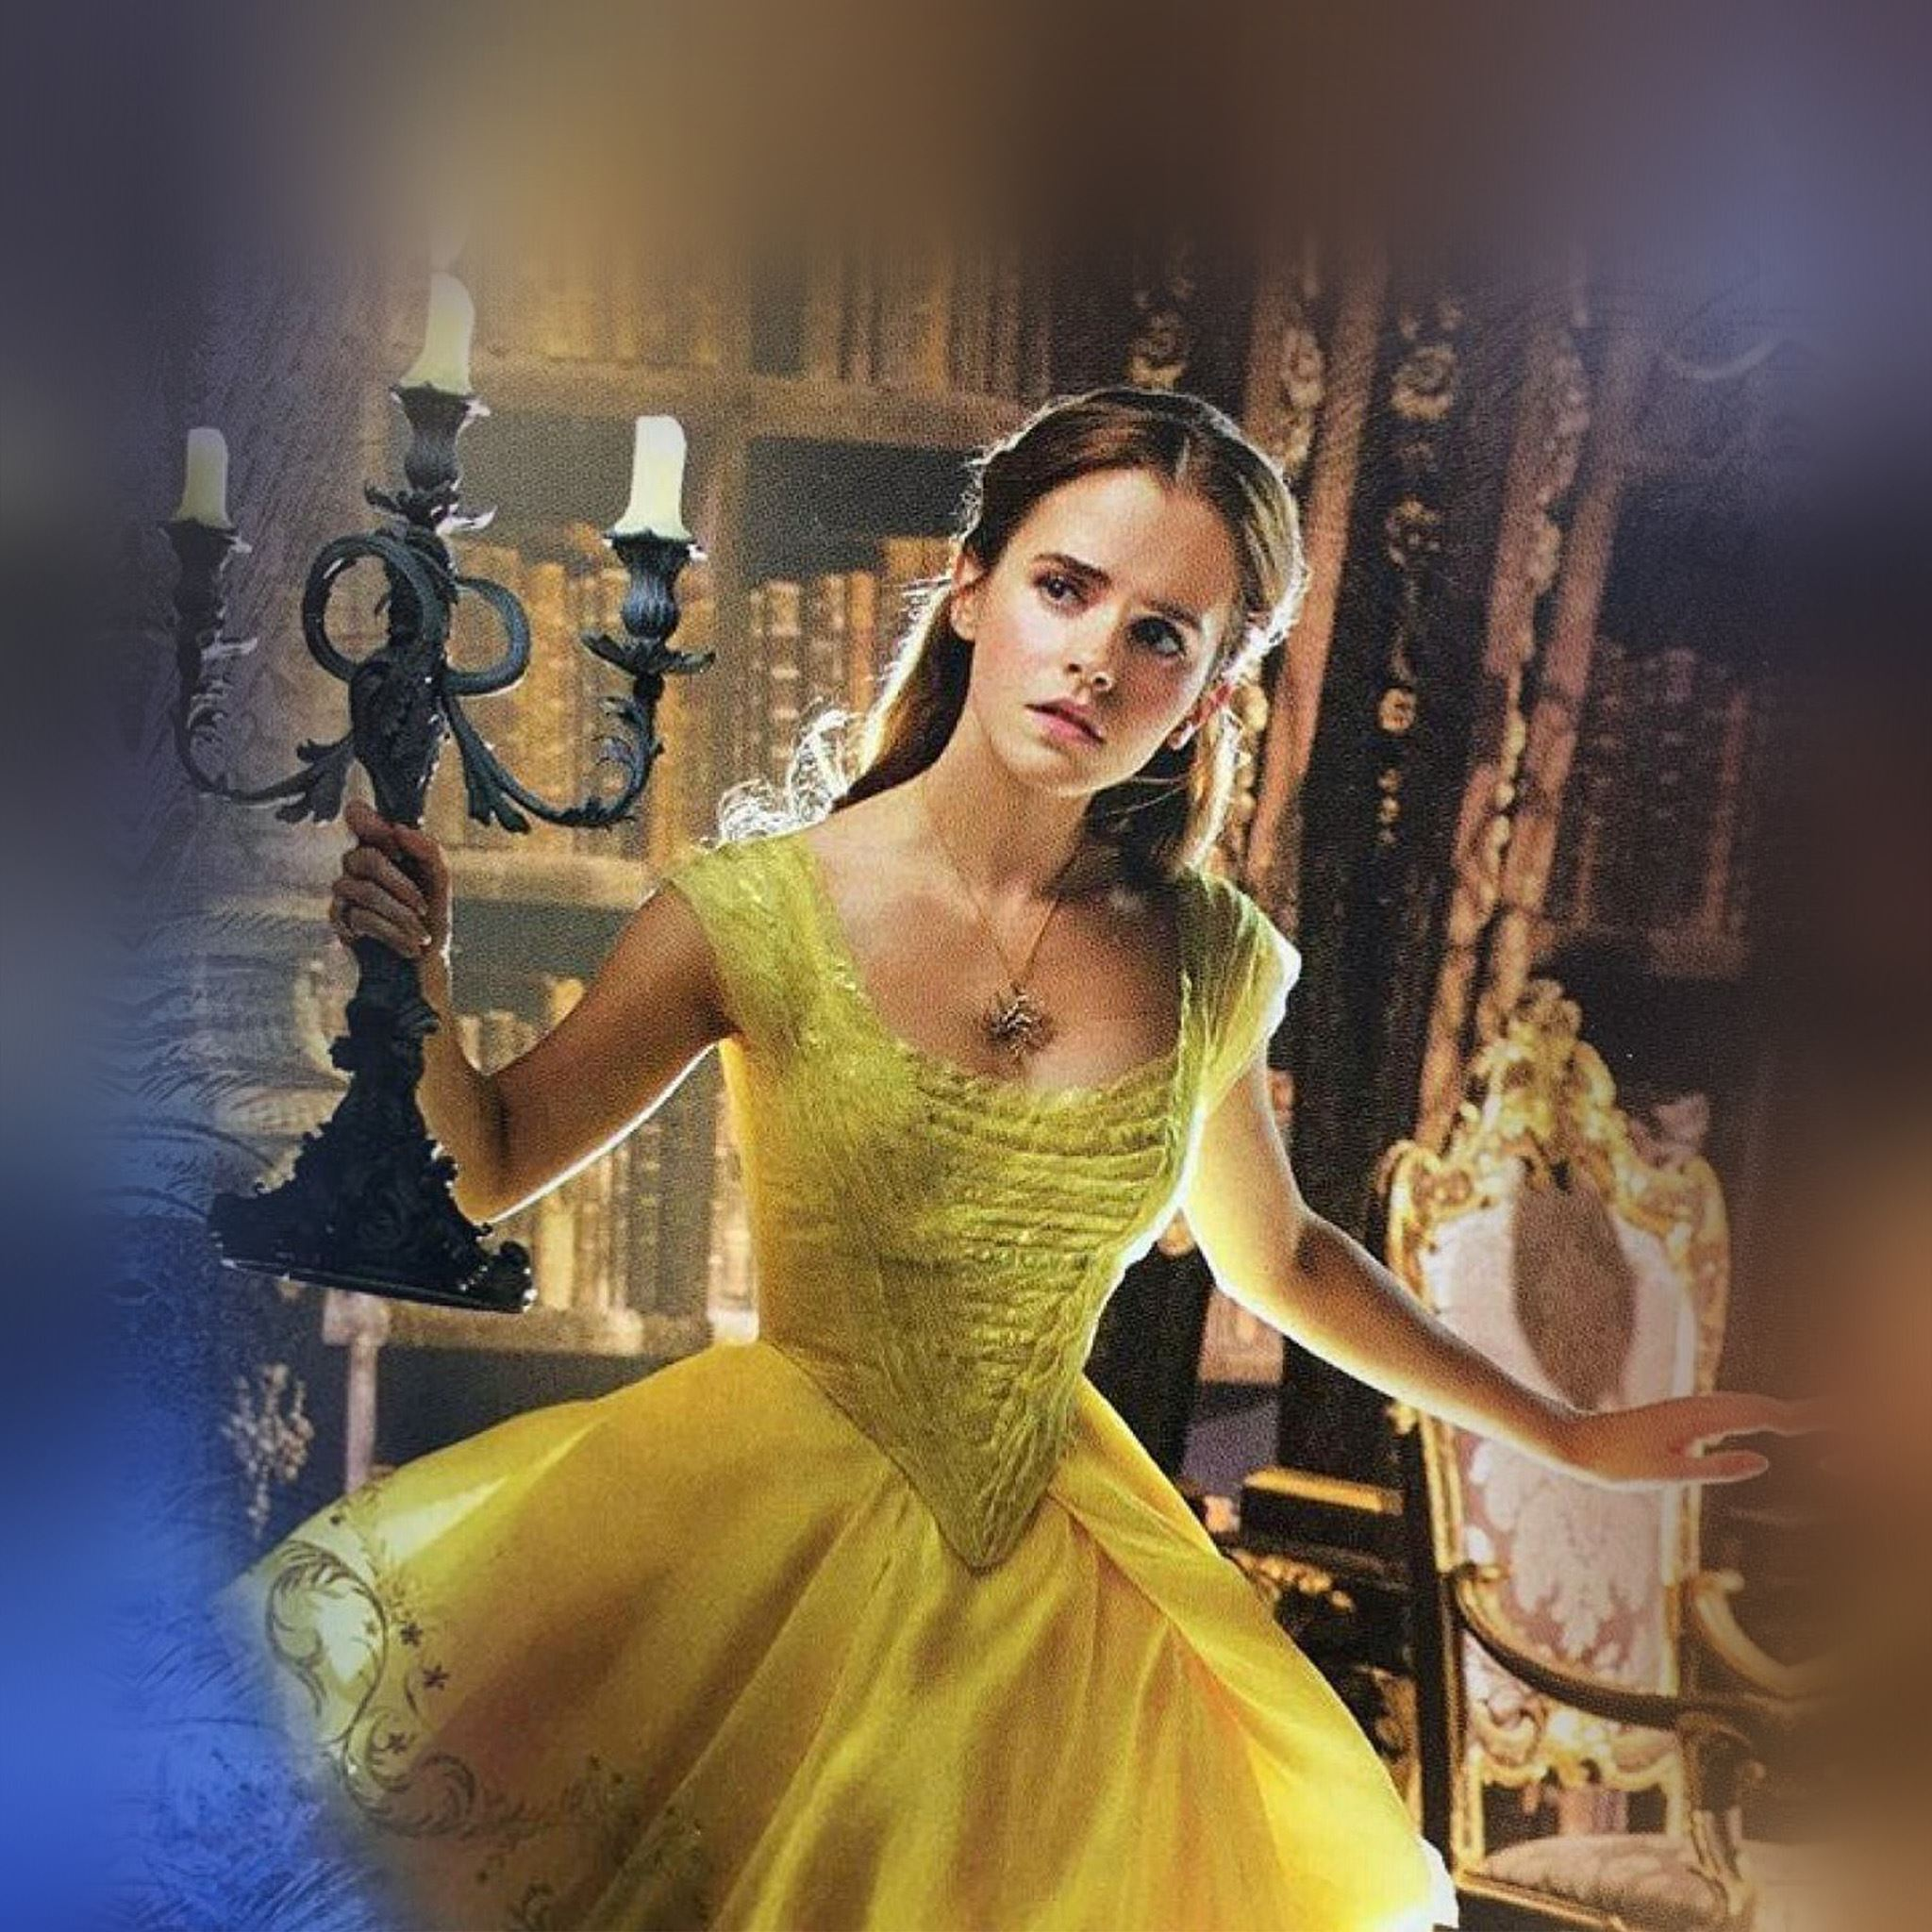 Beauty And The Beast Emma Watson Dress Role Poster Ipad Air